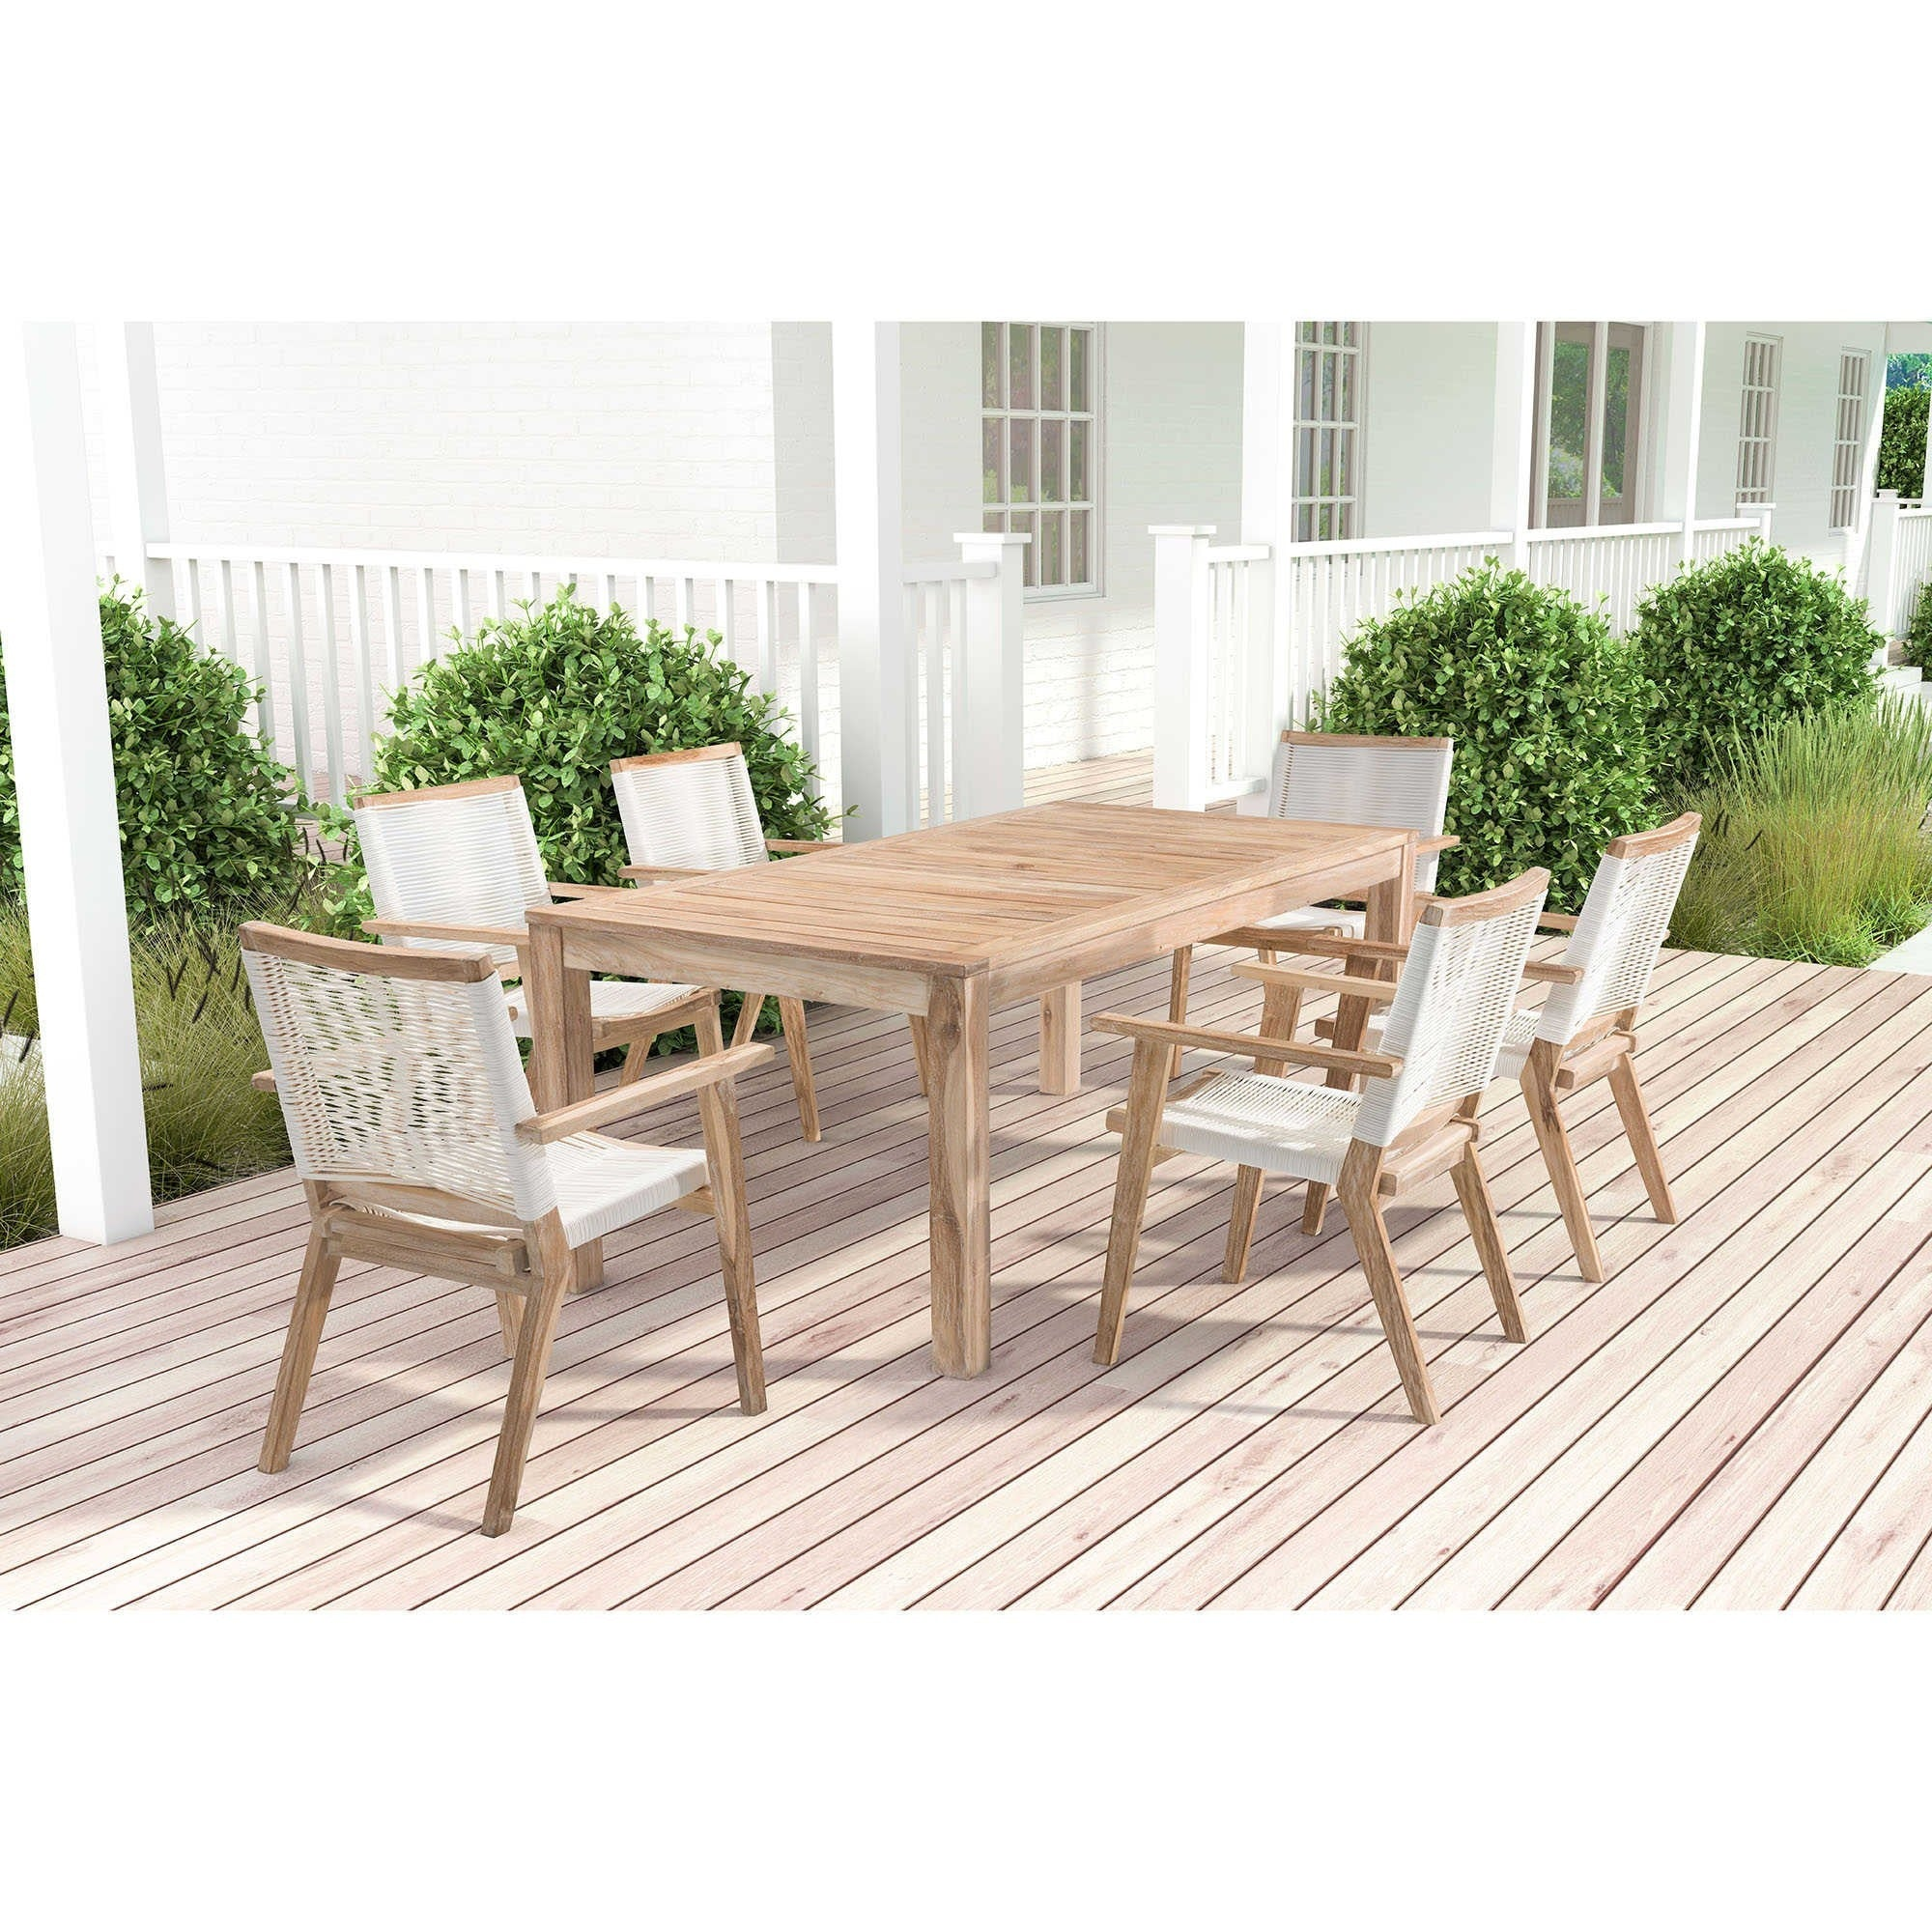 Zuo Modern Westport Patio Dining Set Whitewash Teak PDS S2